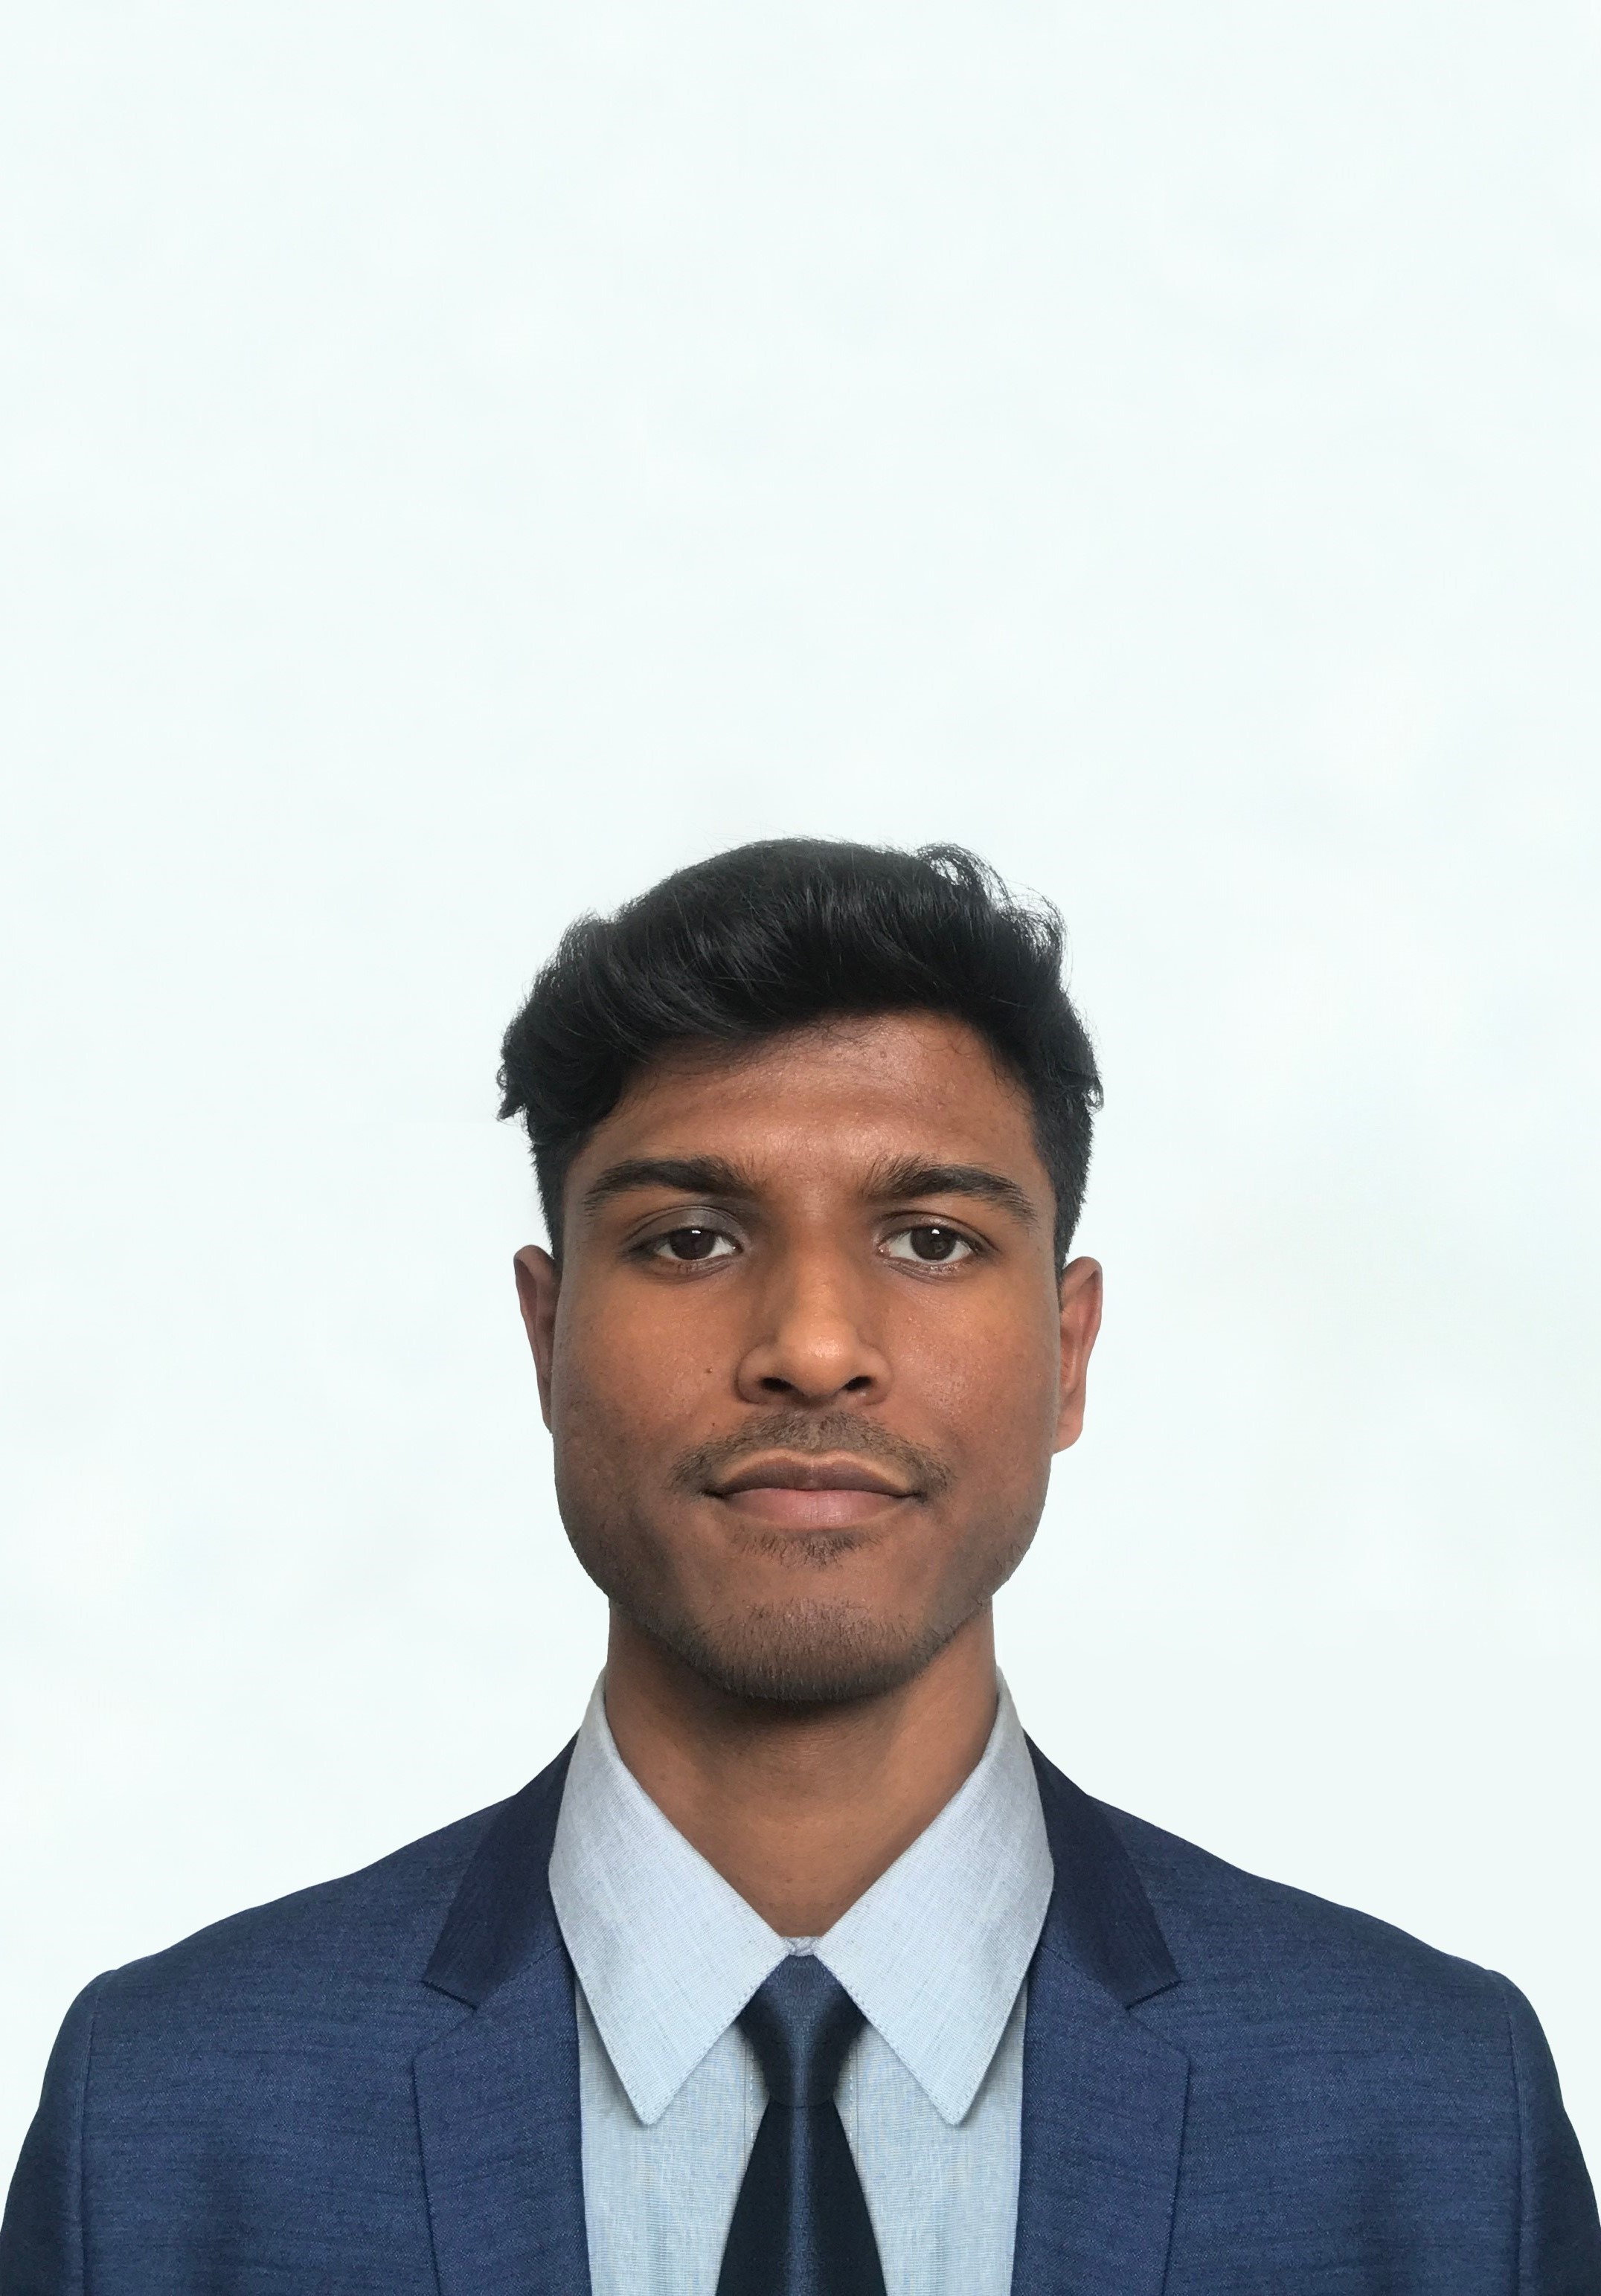 Picture of Dhruv Shah posing wearing a suit and tie